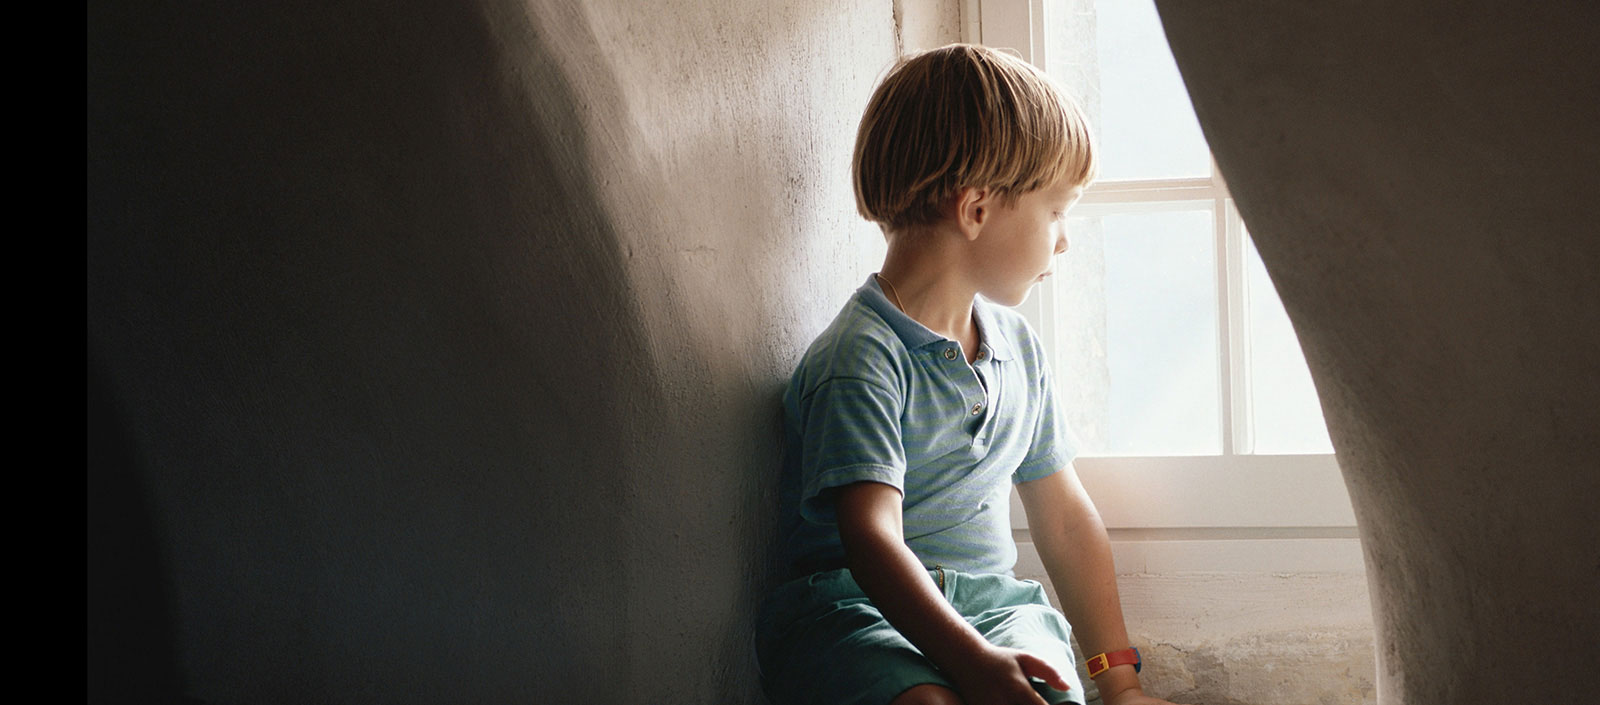 Stand up for an abused or neglectedchild.